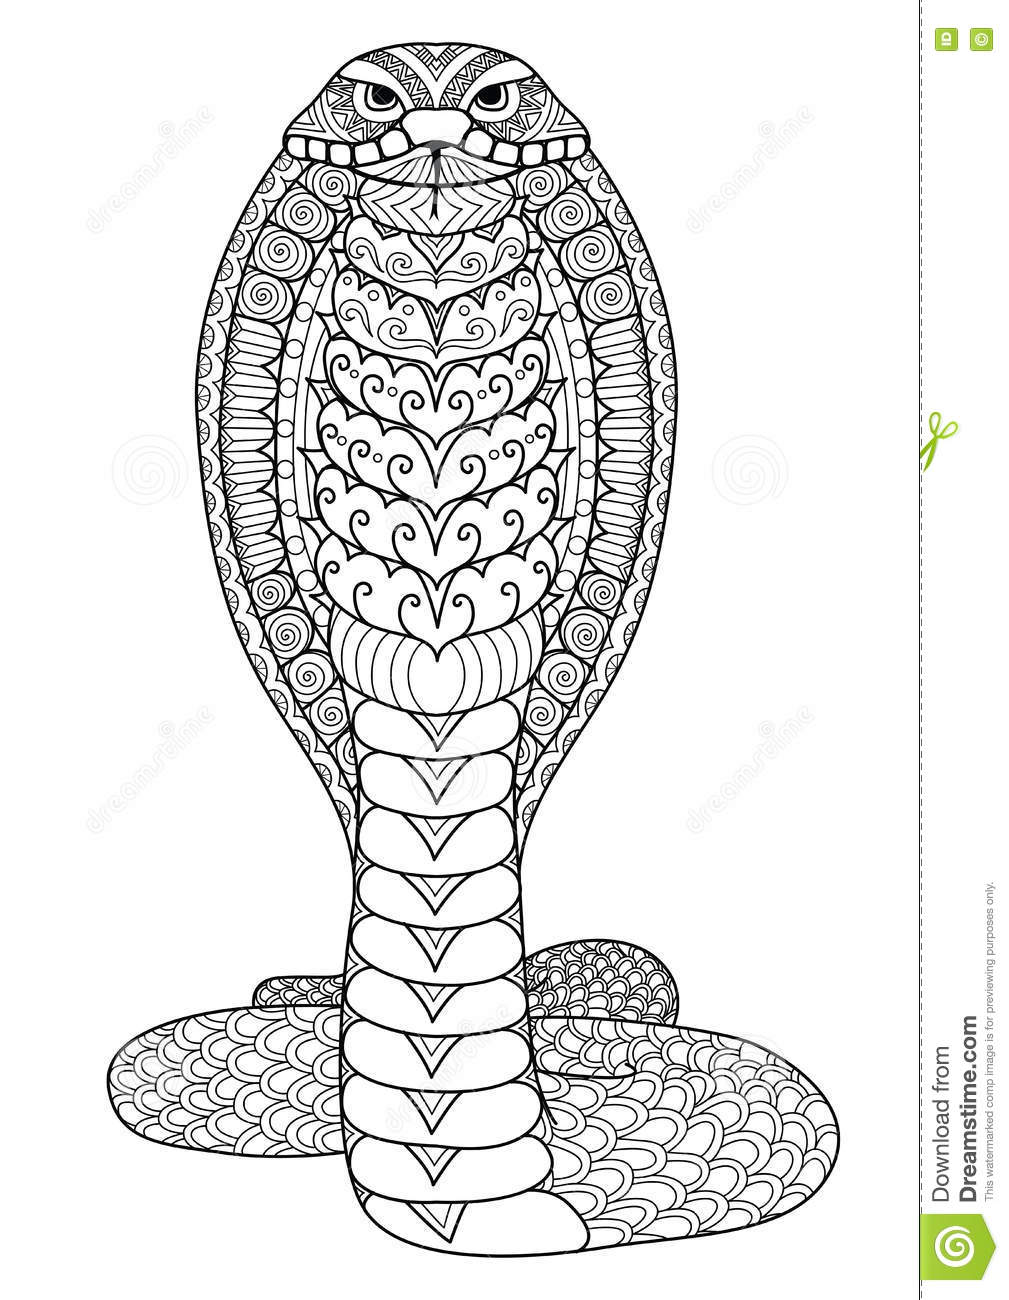 clean lines doodle art design of cobra snake for coloring book t